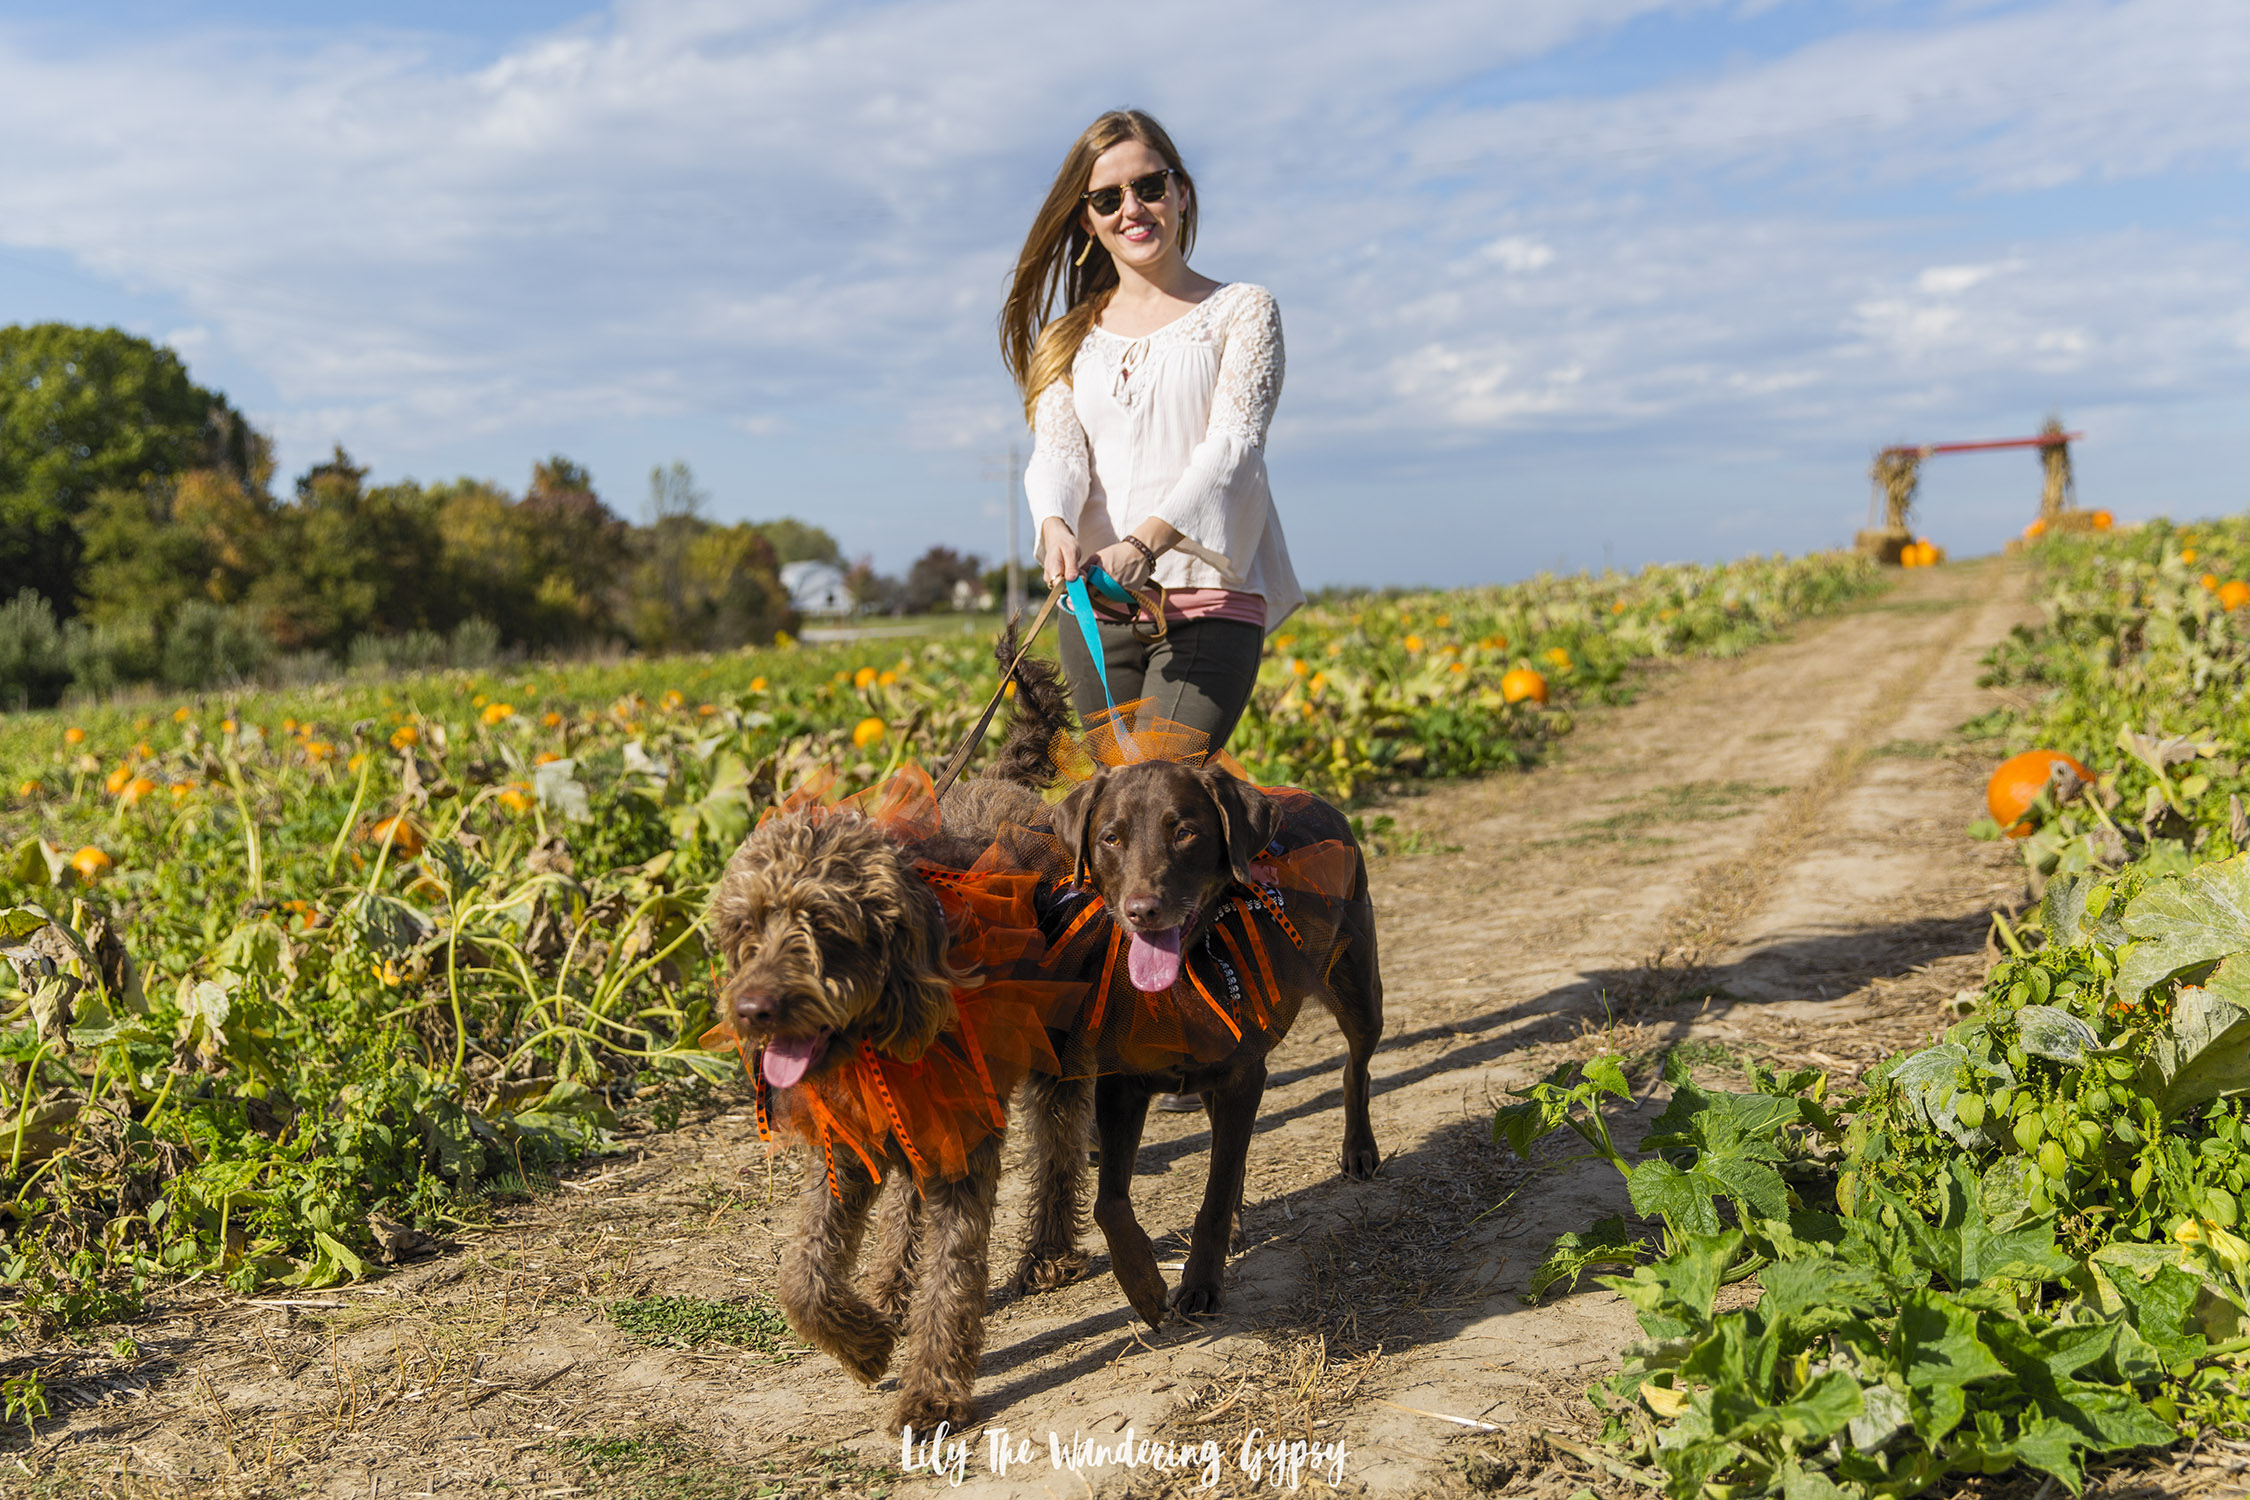 Walking the dogs in the pumpkin patch